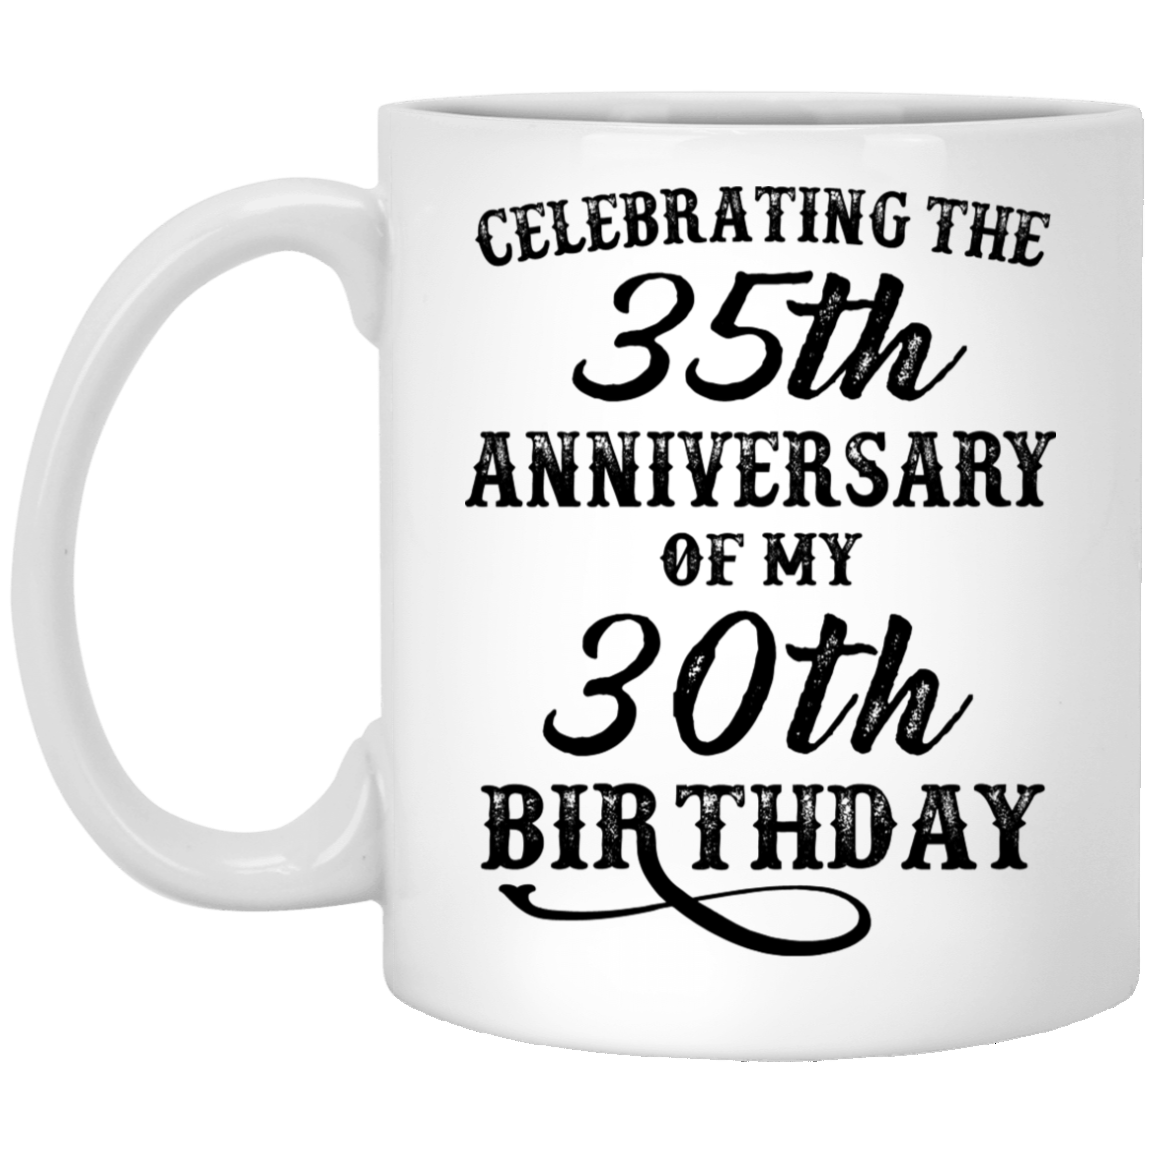 Awesome 65th Birthday Gifts Celebrating The 35th Anniversary Of My 30th Birthd 99promocode